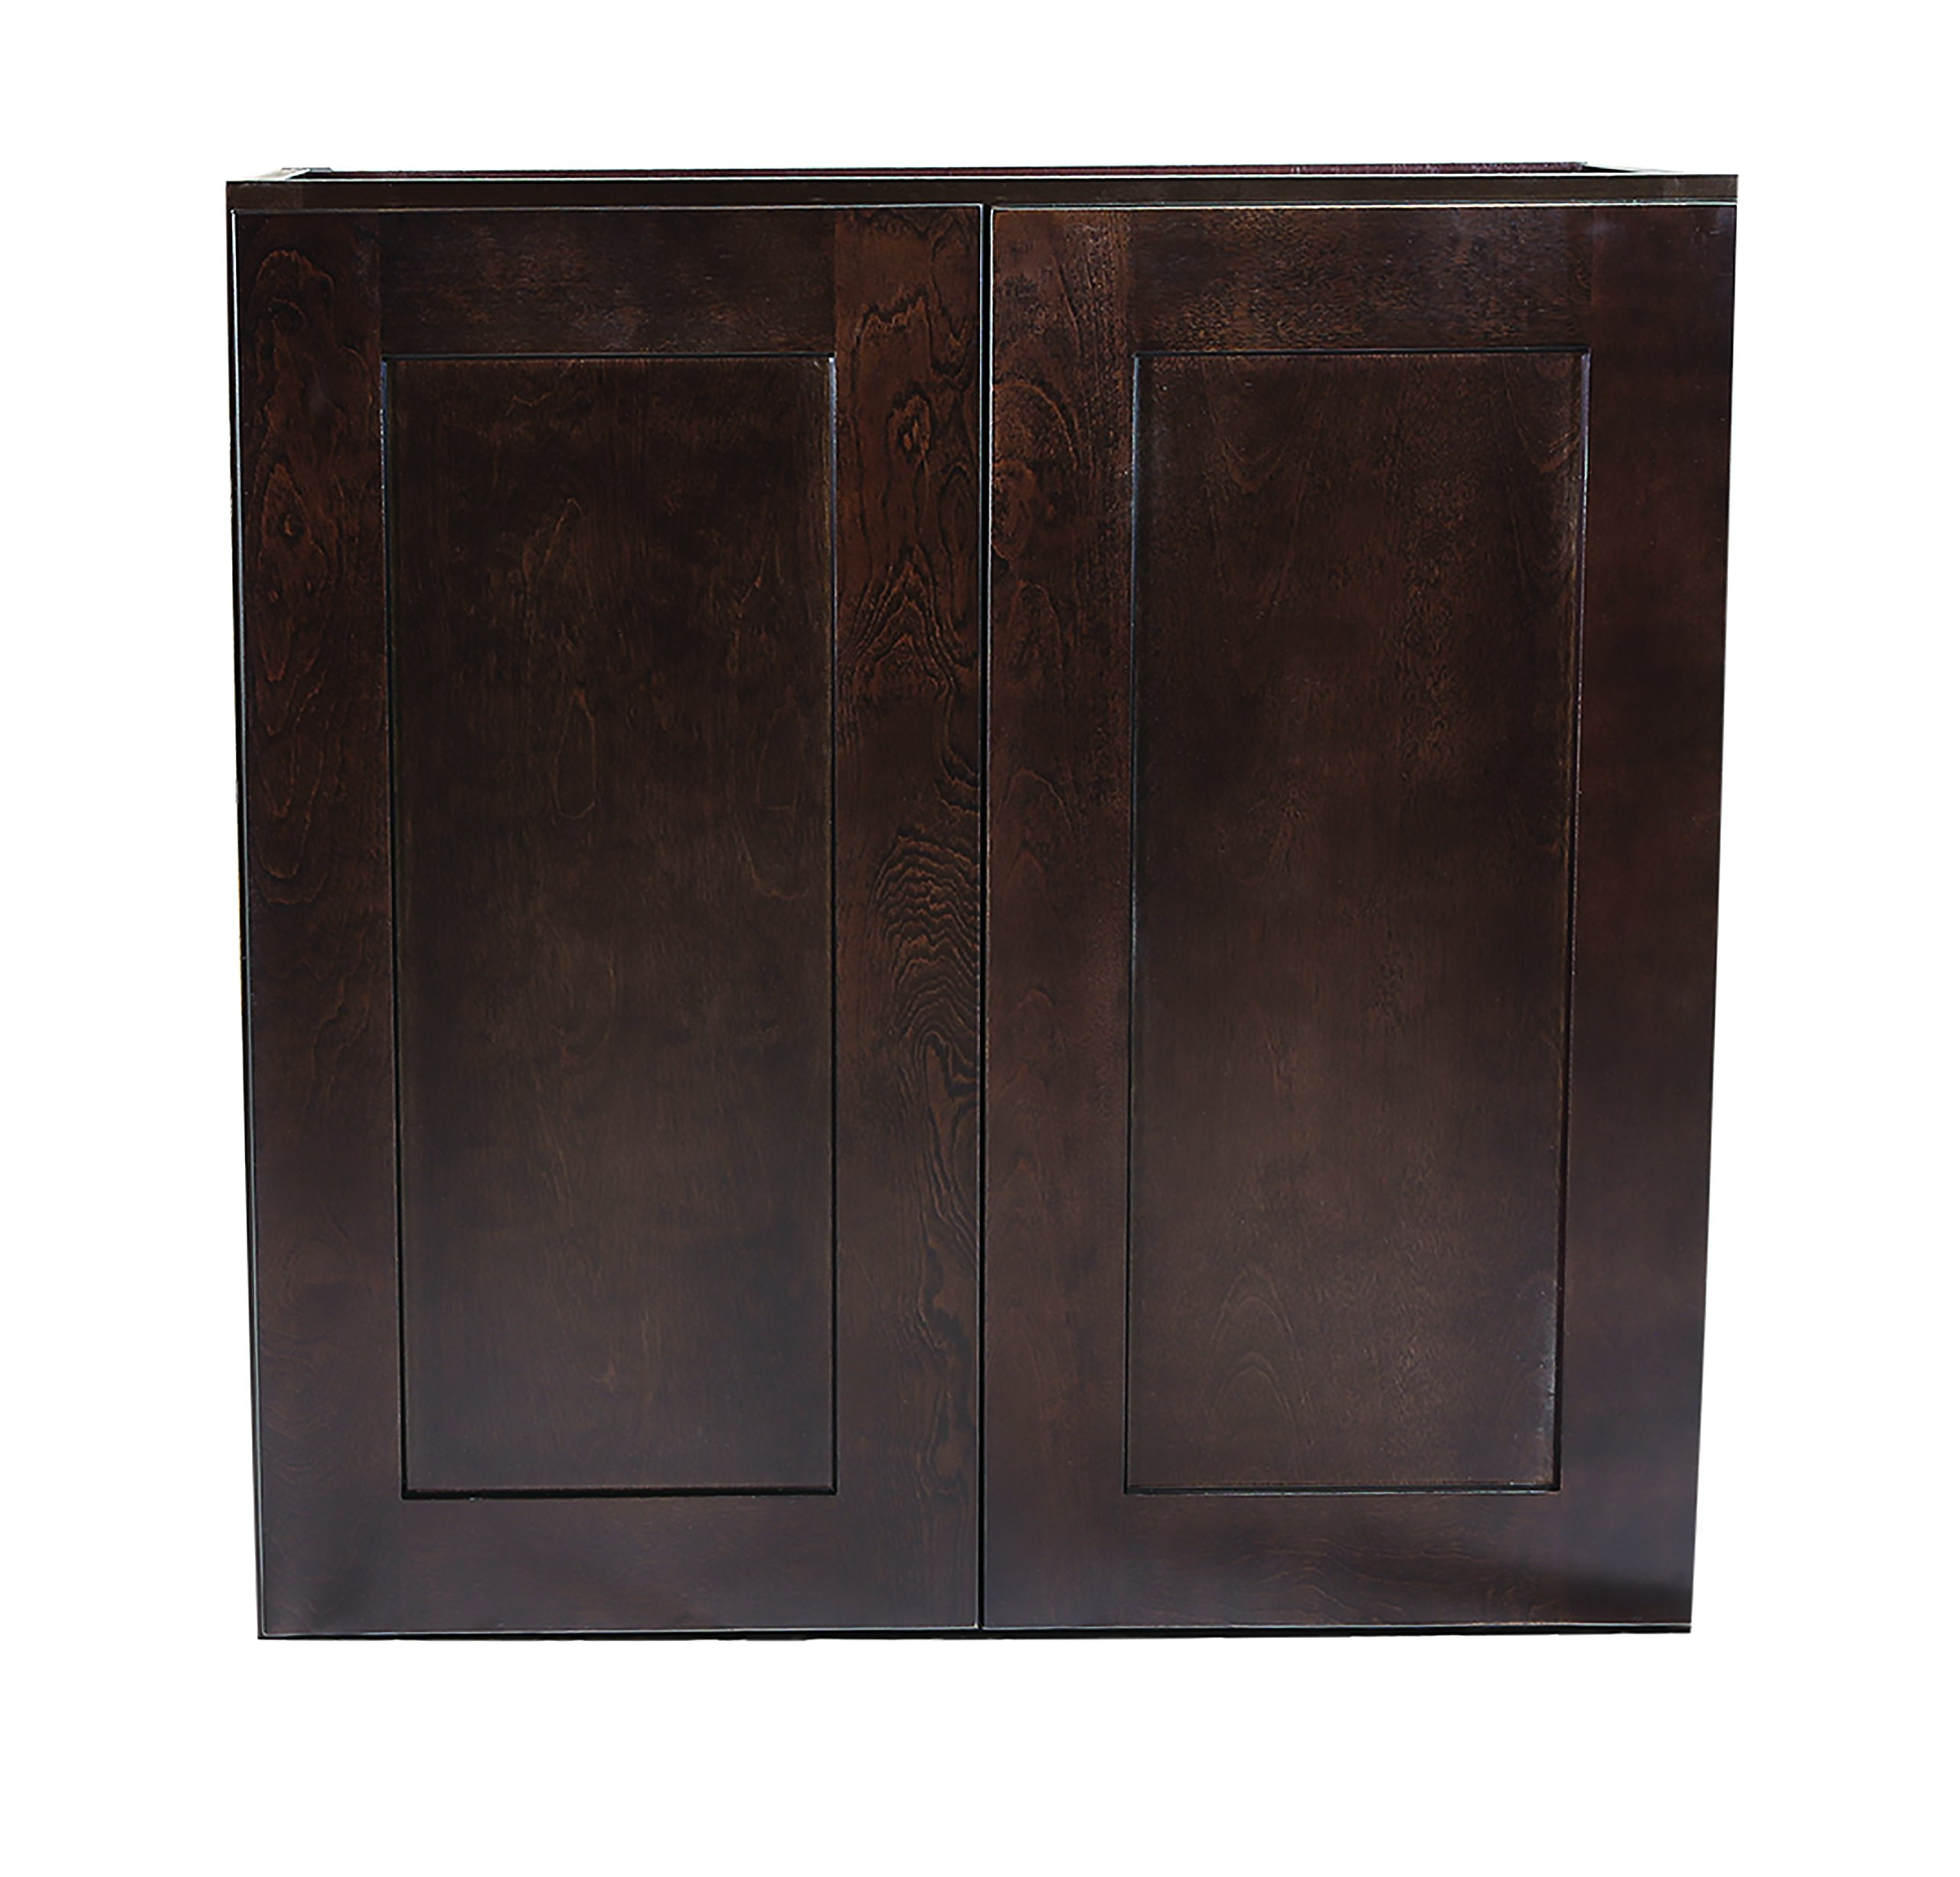 "Design House Brookings 27"" Fully Assembled Kitchen Wall Cabinet, Espresso Shaker"